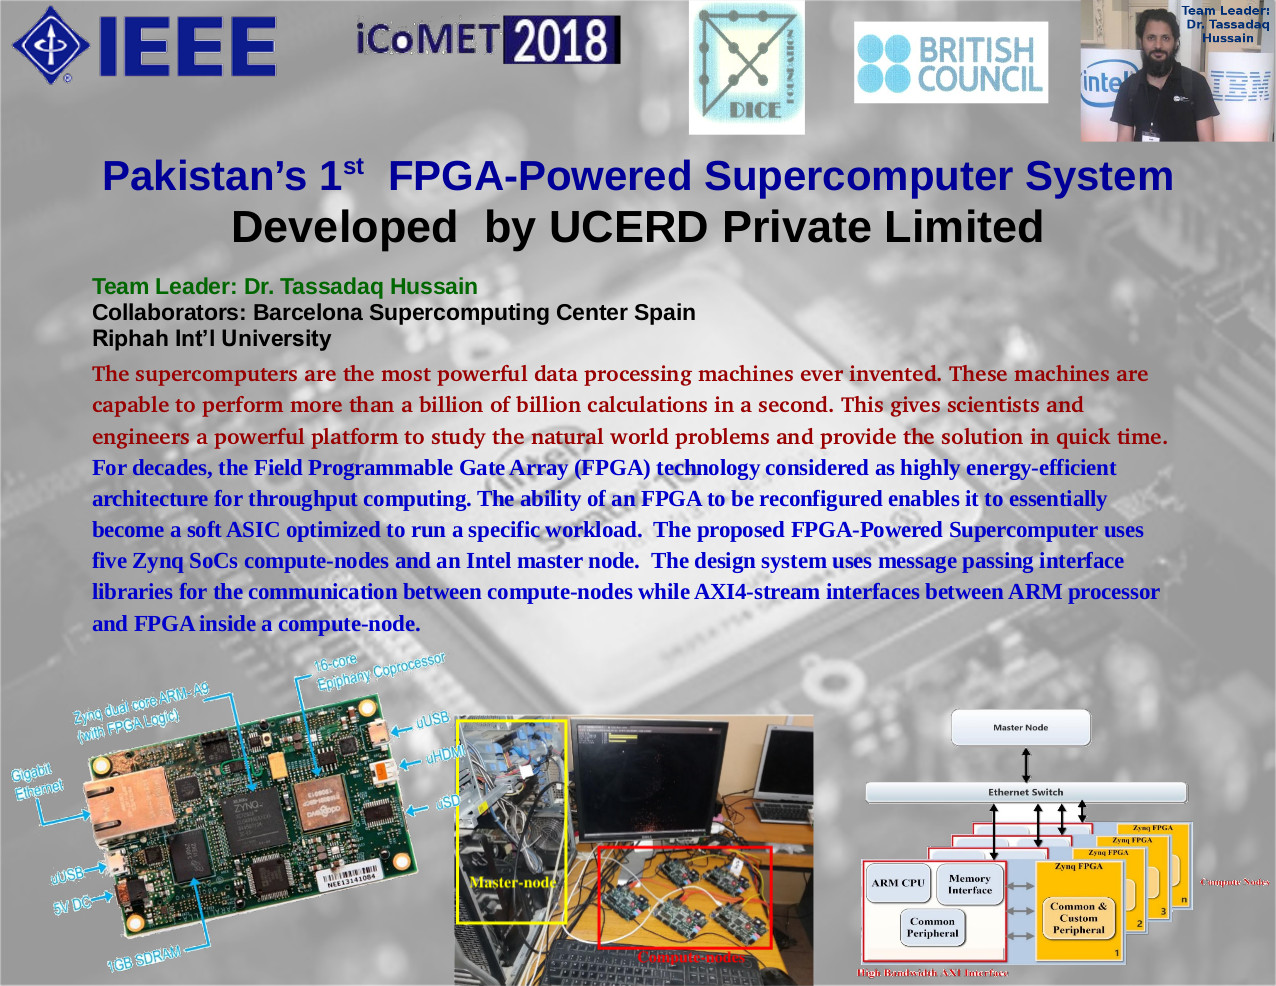 Pakistan's 1 st FPGA-Powered Supercomputer System Developed by UCERD Private Limited